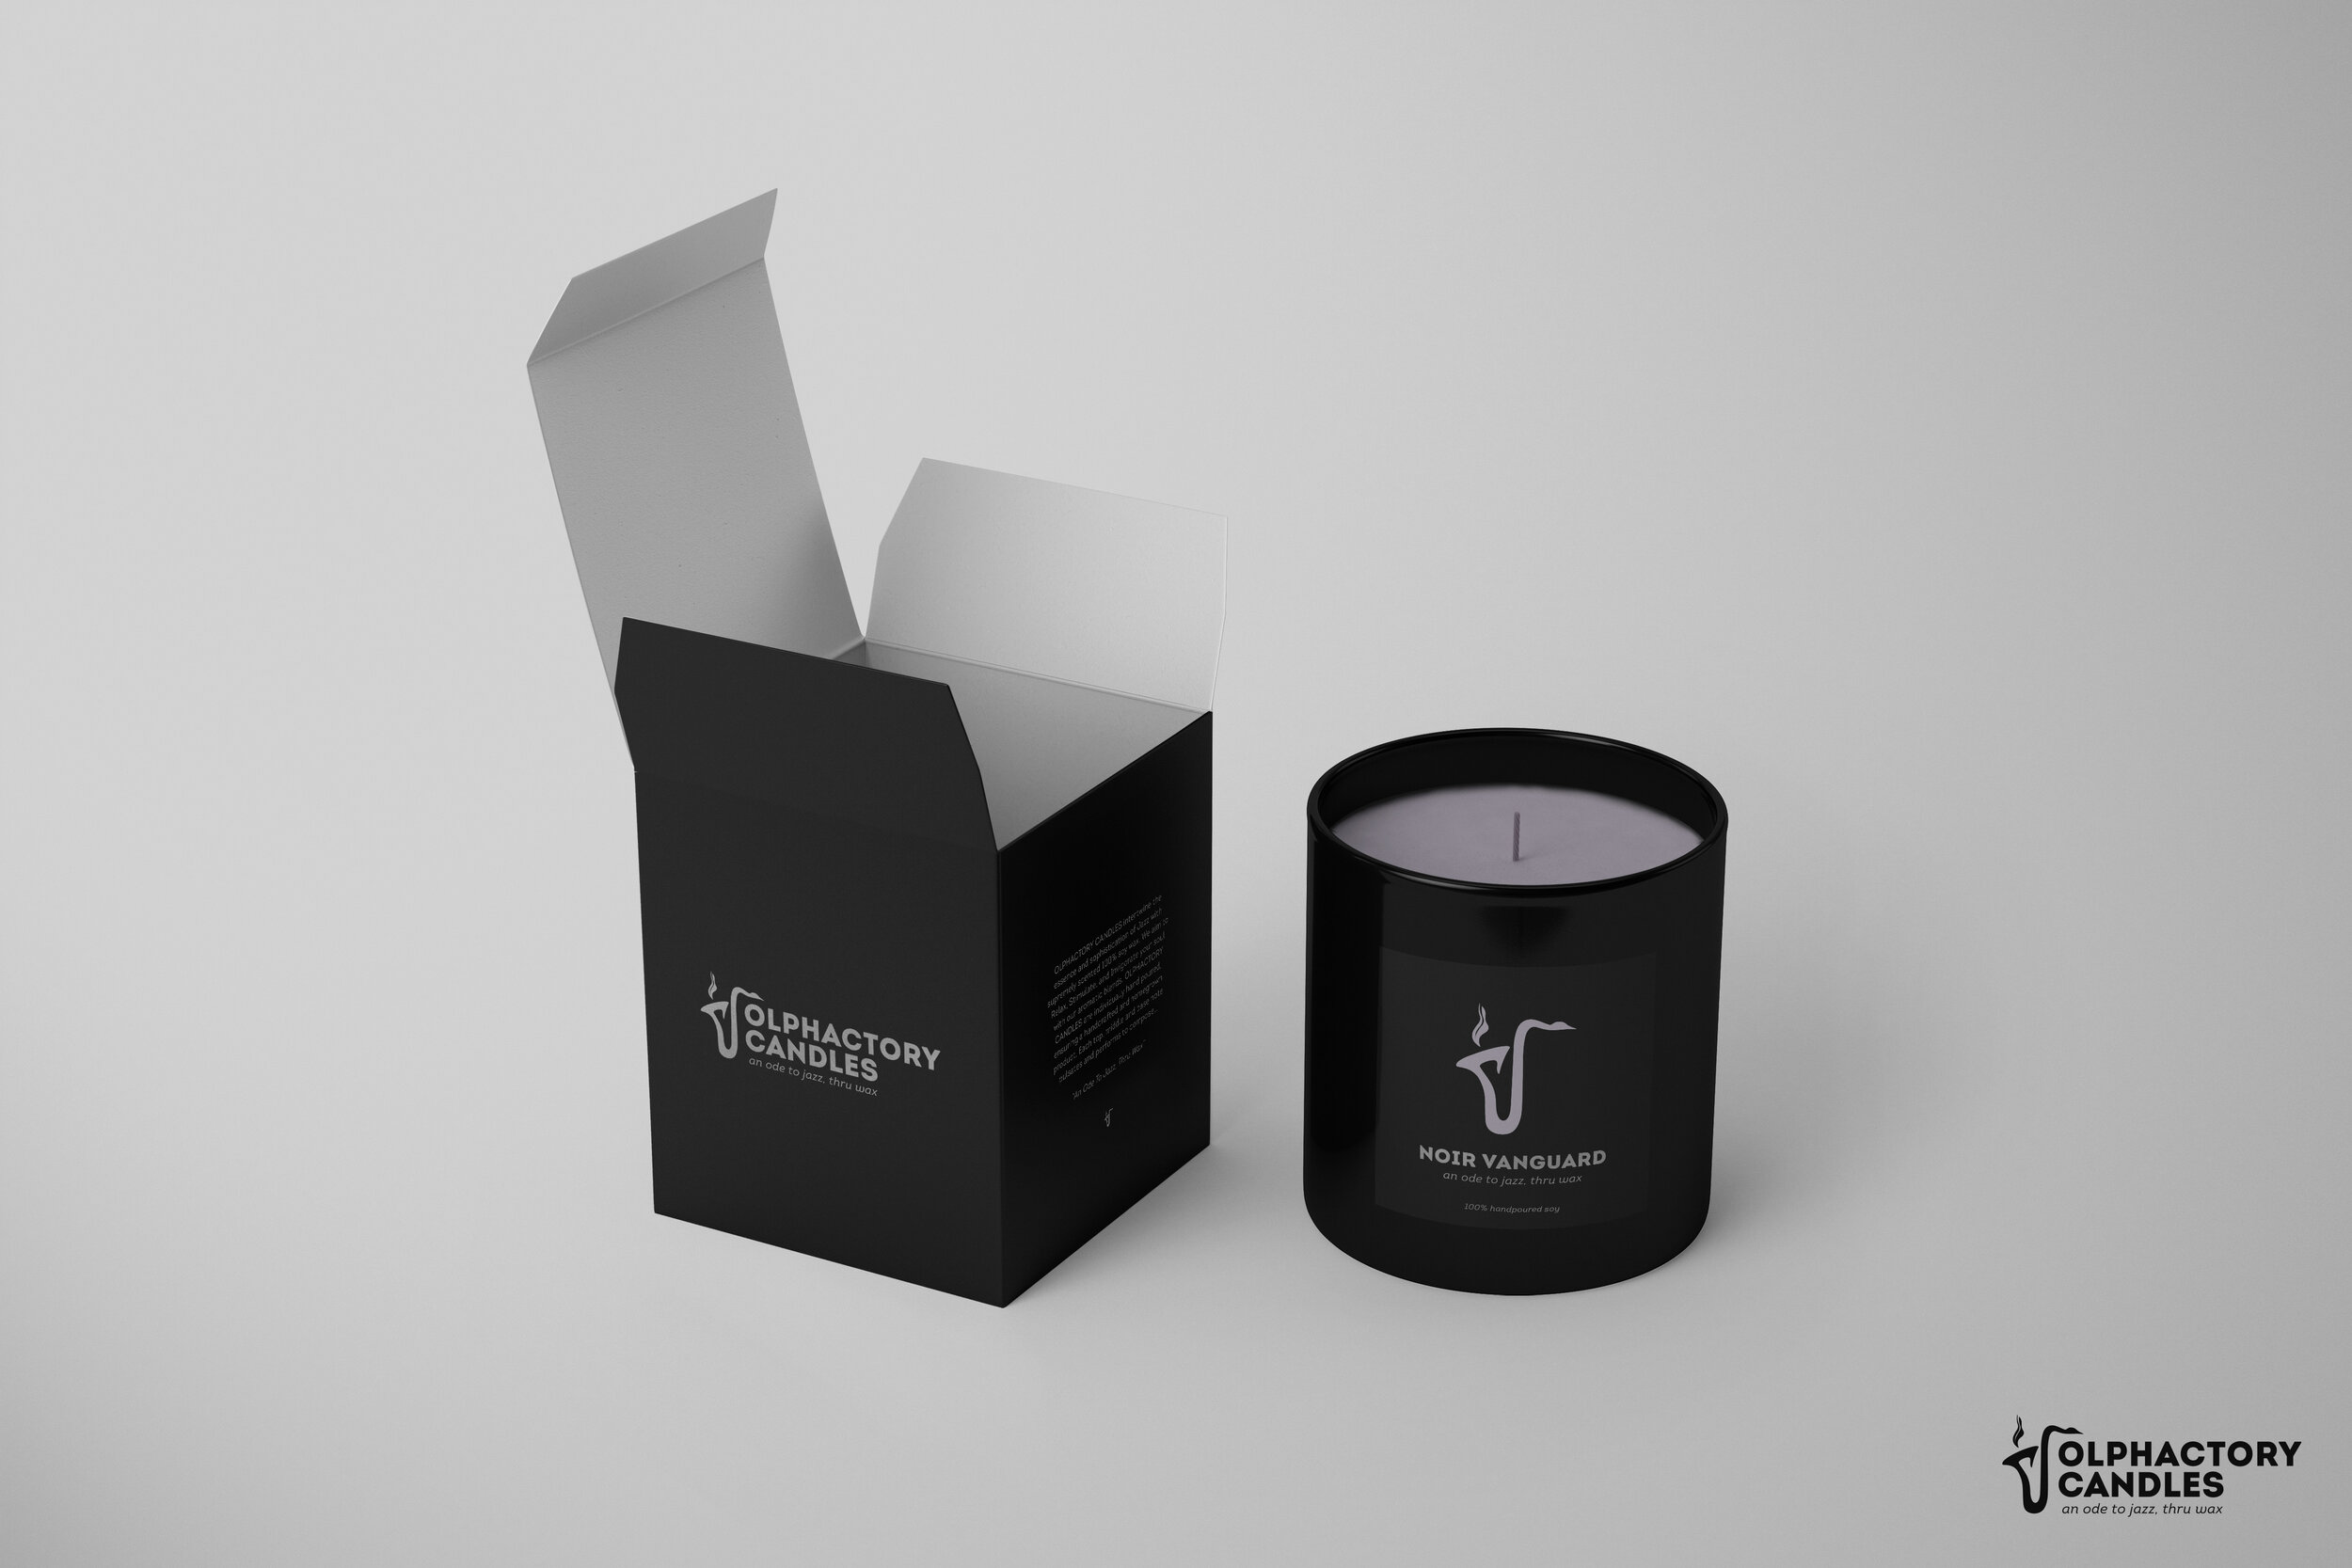 An open box and OPC candle on a white background.